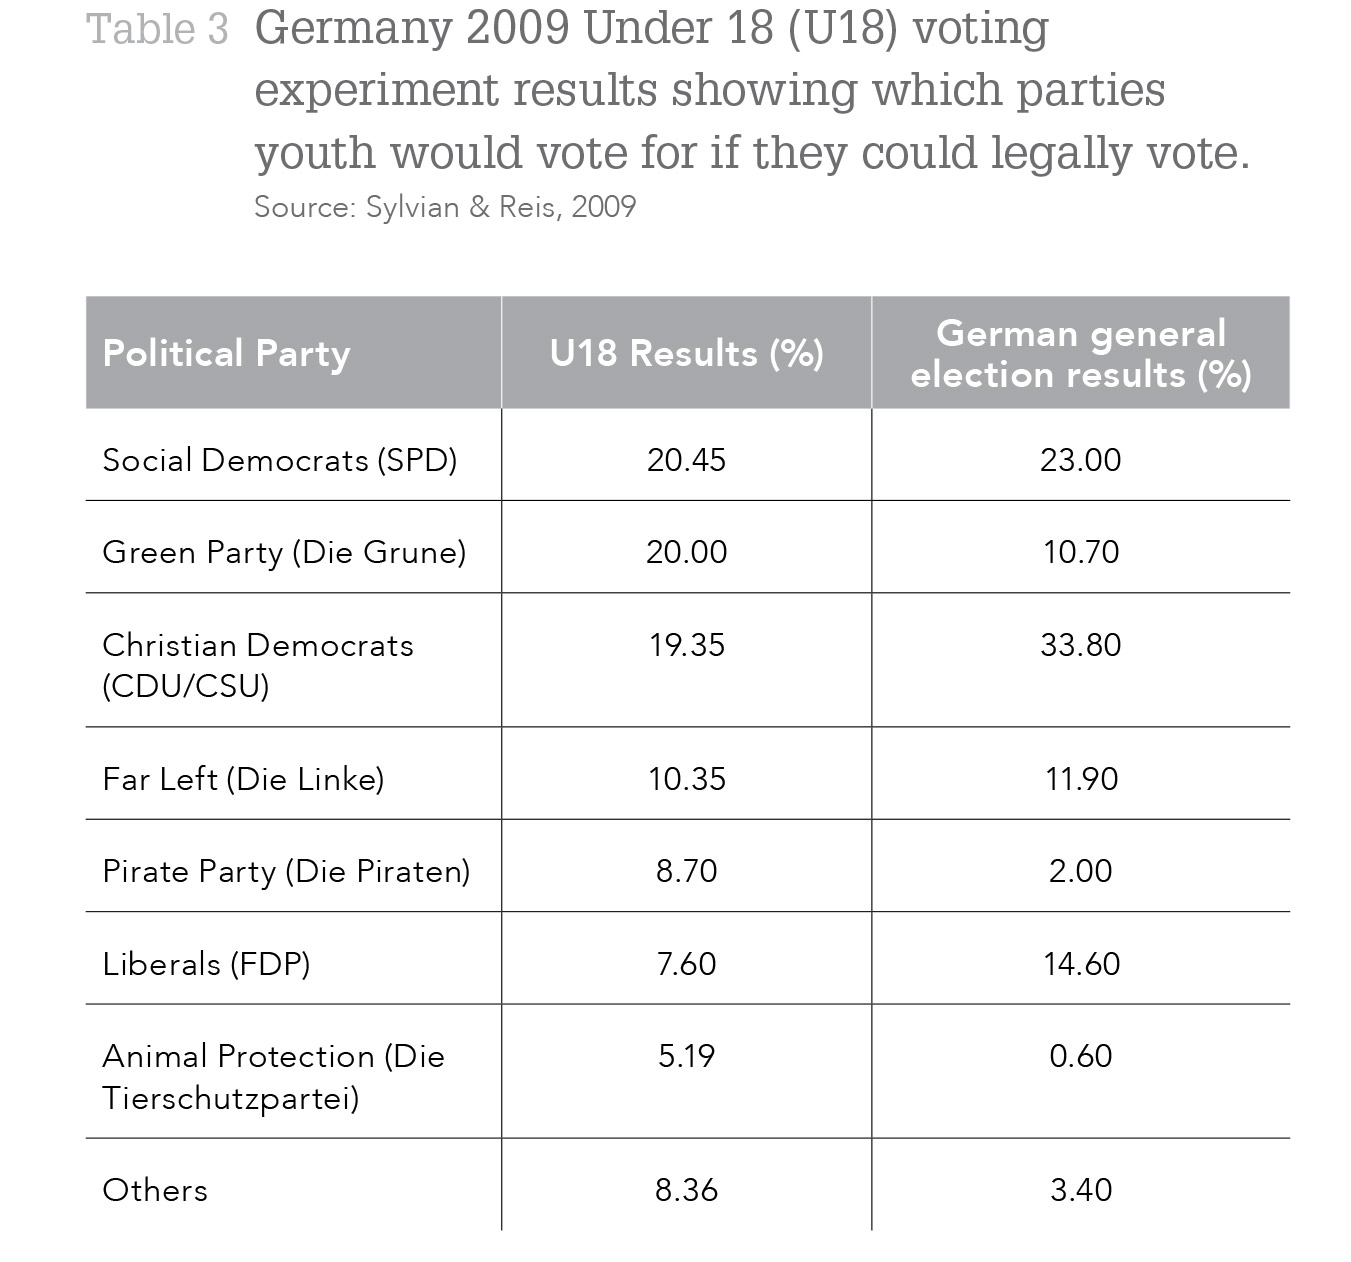 Germany 2009 Under 18 (U18) voting experiment results showing which parties youth would vote for if they could legally vote. Source: Sylvian & Reis, 2009